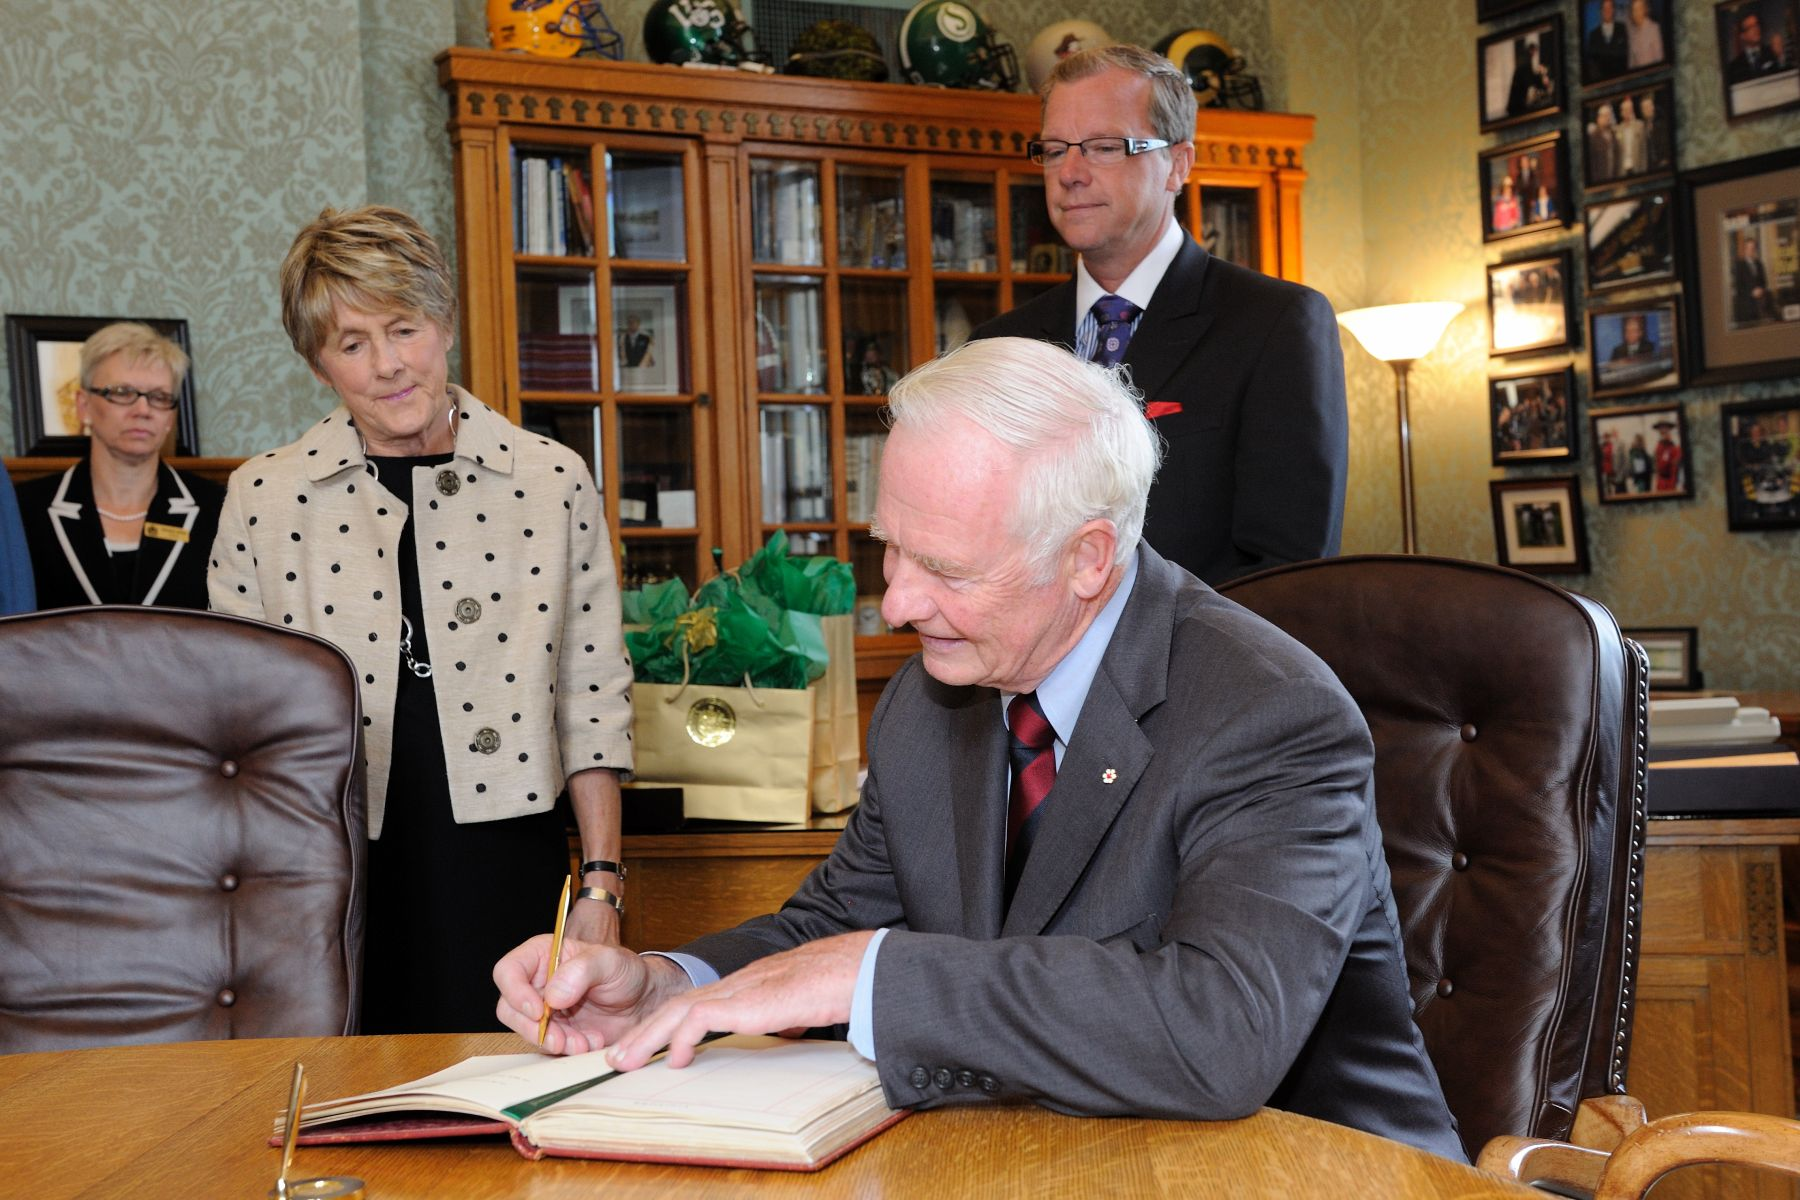 Their Excellencies then returned to the Legislative Assembly for a meeting with the Honorable Brad Wall, Premier of Saskatchewan. His Excellency signed the guest book.